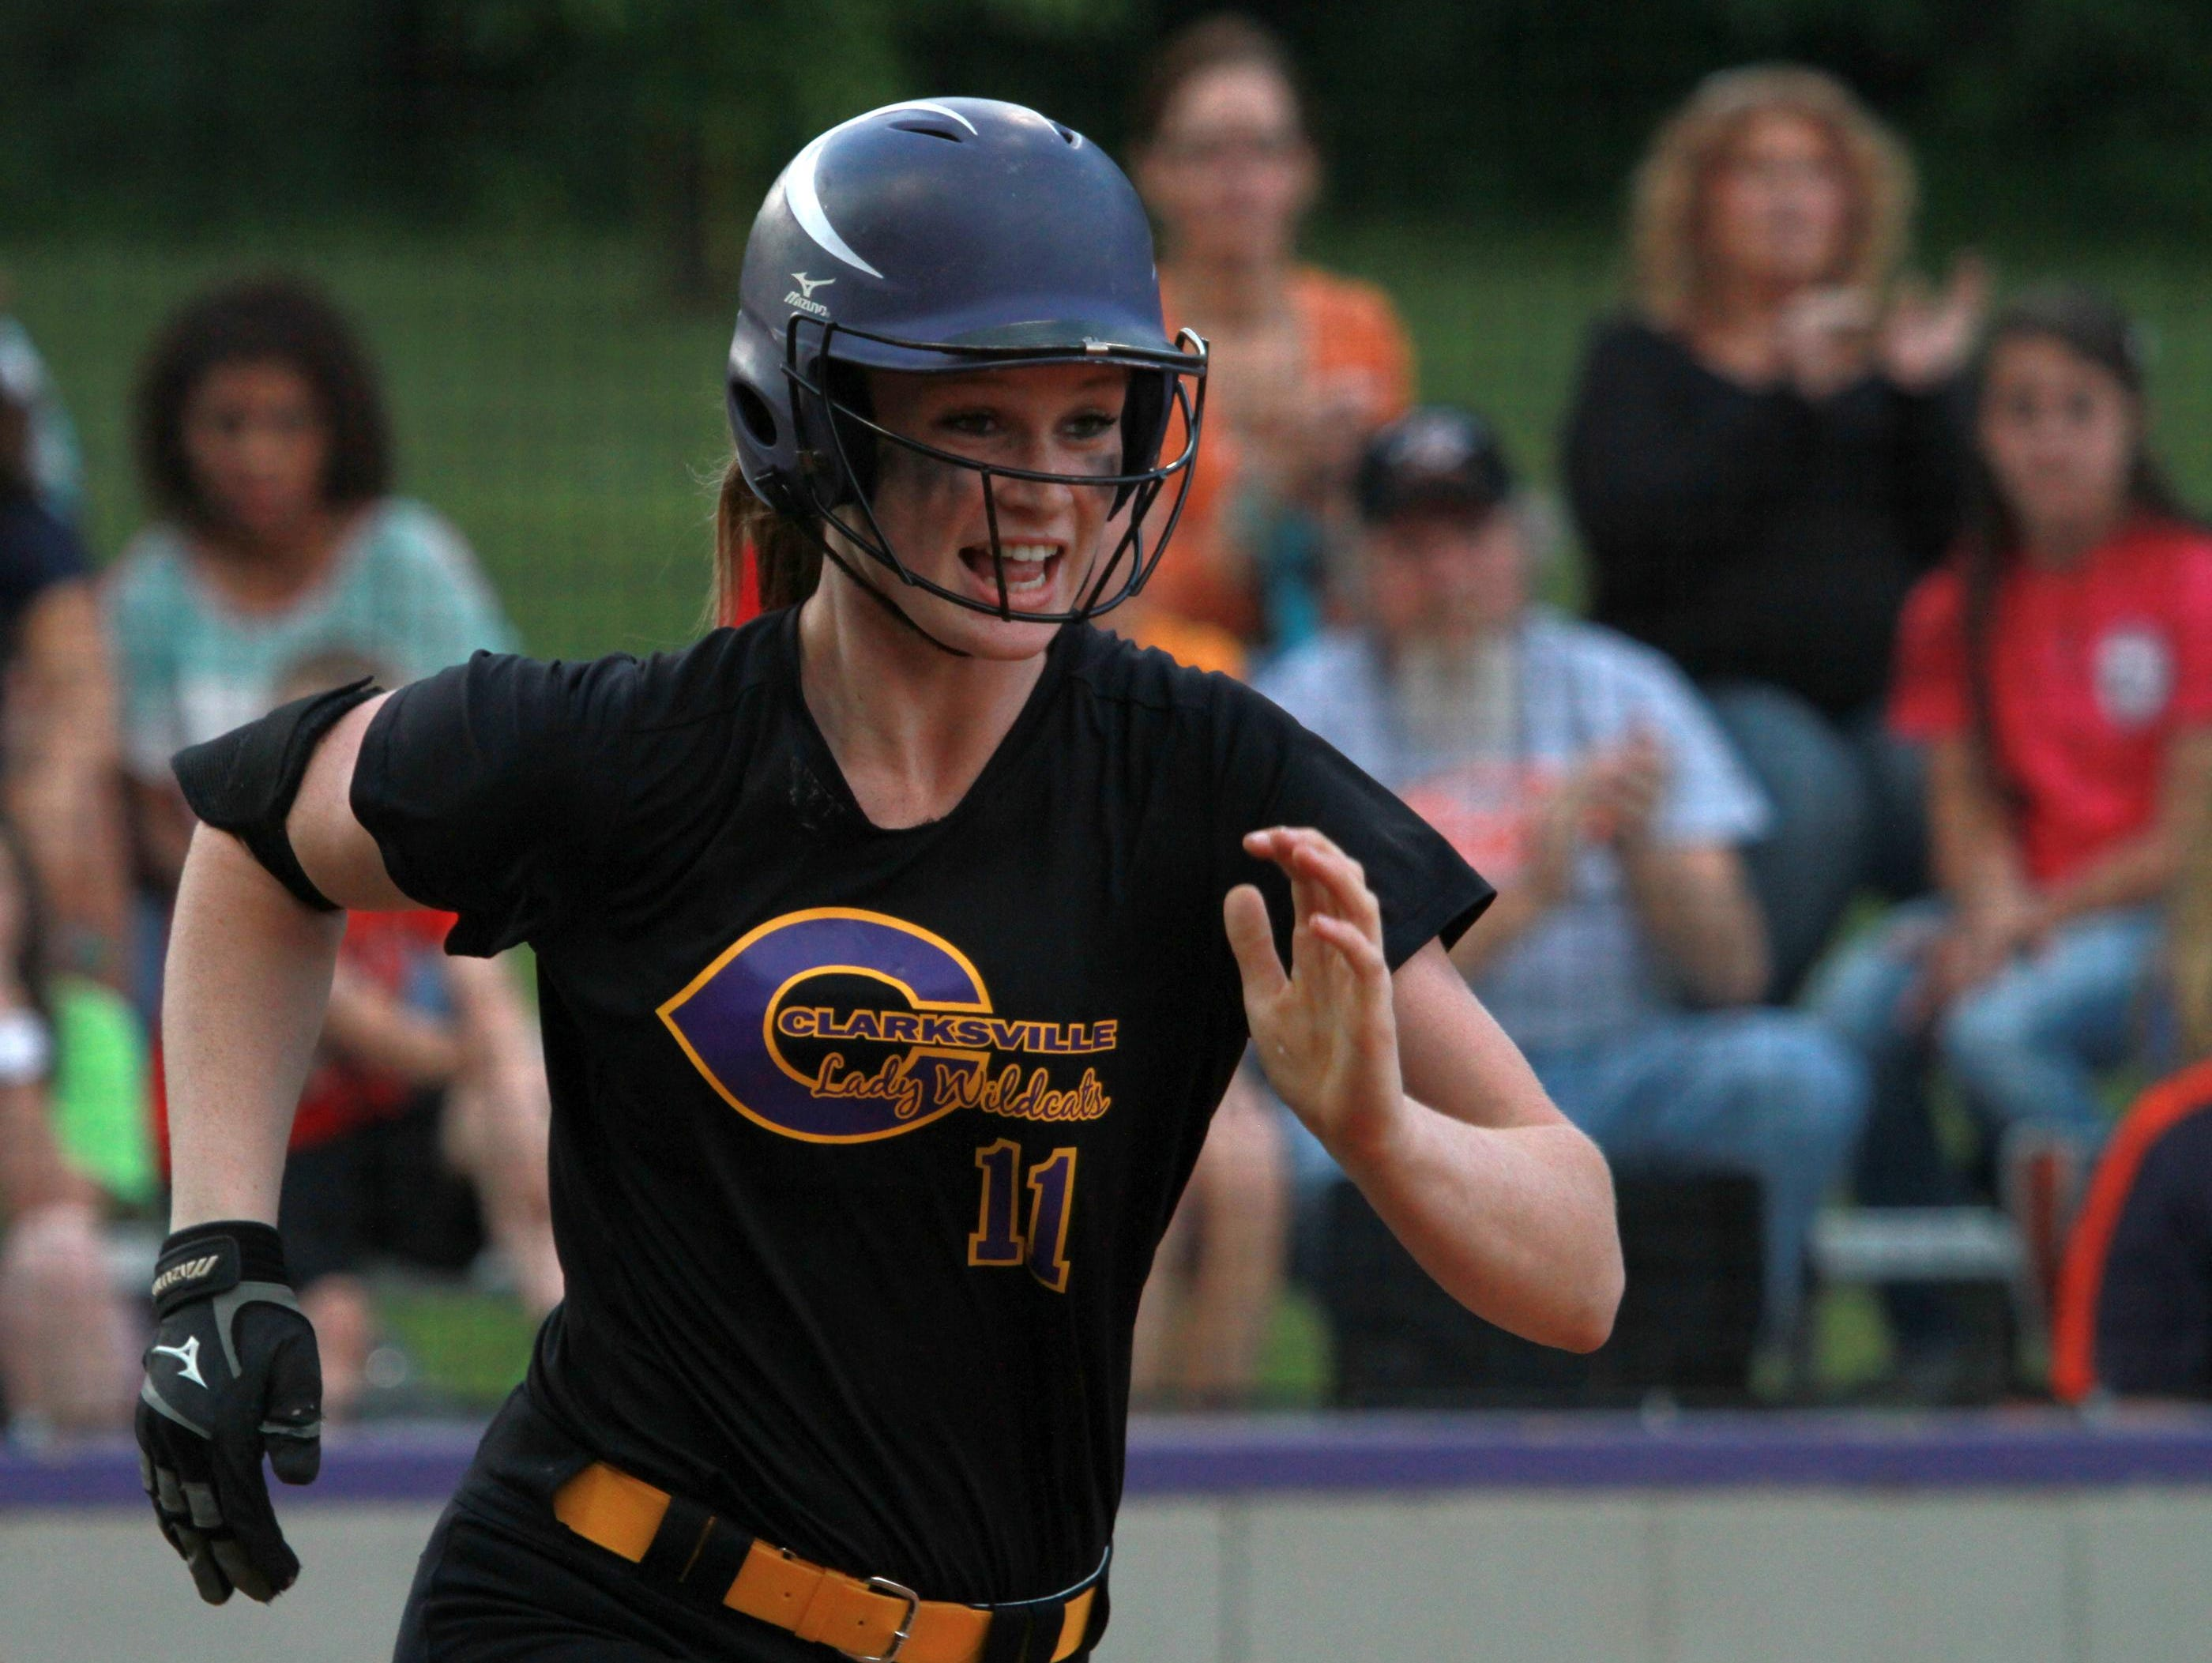 Clarksville High's Haley Bearden runs to first base during the Region 5-AAA championship against Dickson County two years ago. Bearden was the lone Montgomery County representative named to the TSWA's All State softball team.